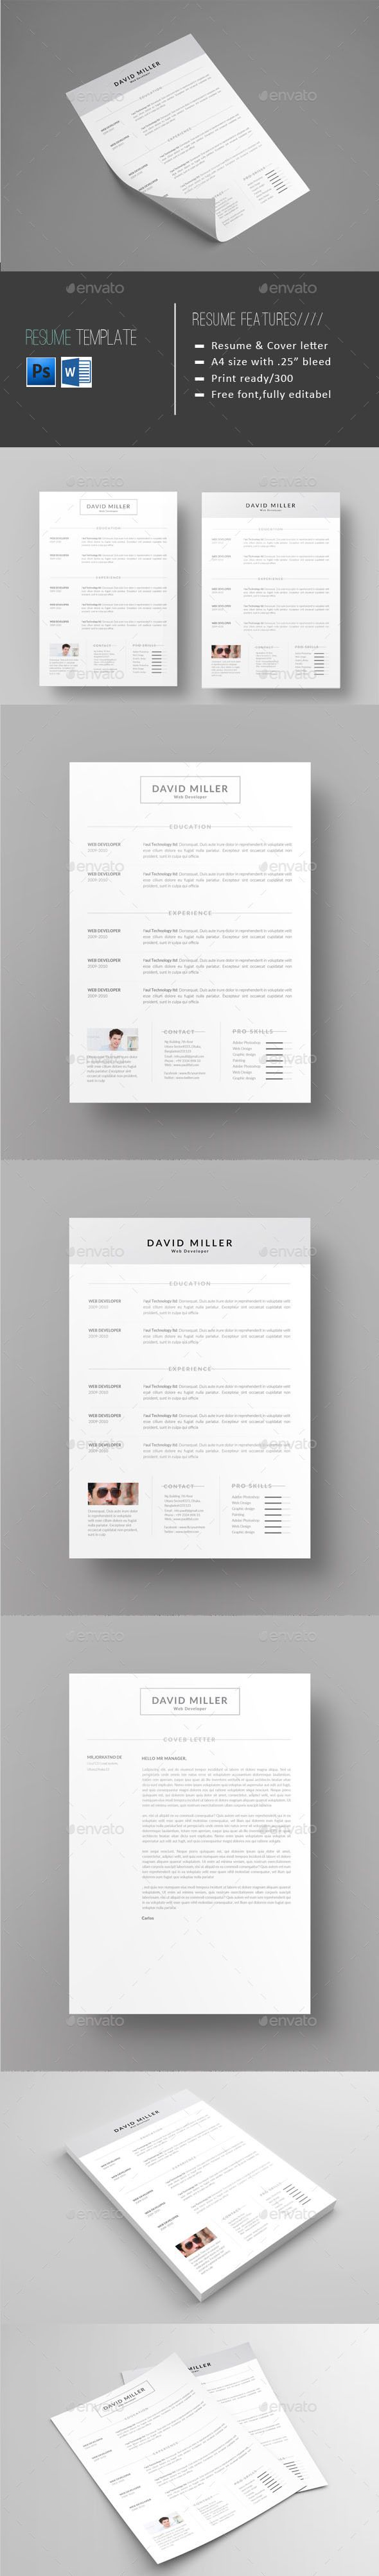 Resume by Paulresume ResumeSpecifications with color dpi